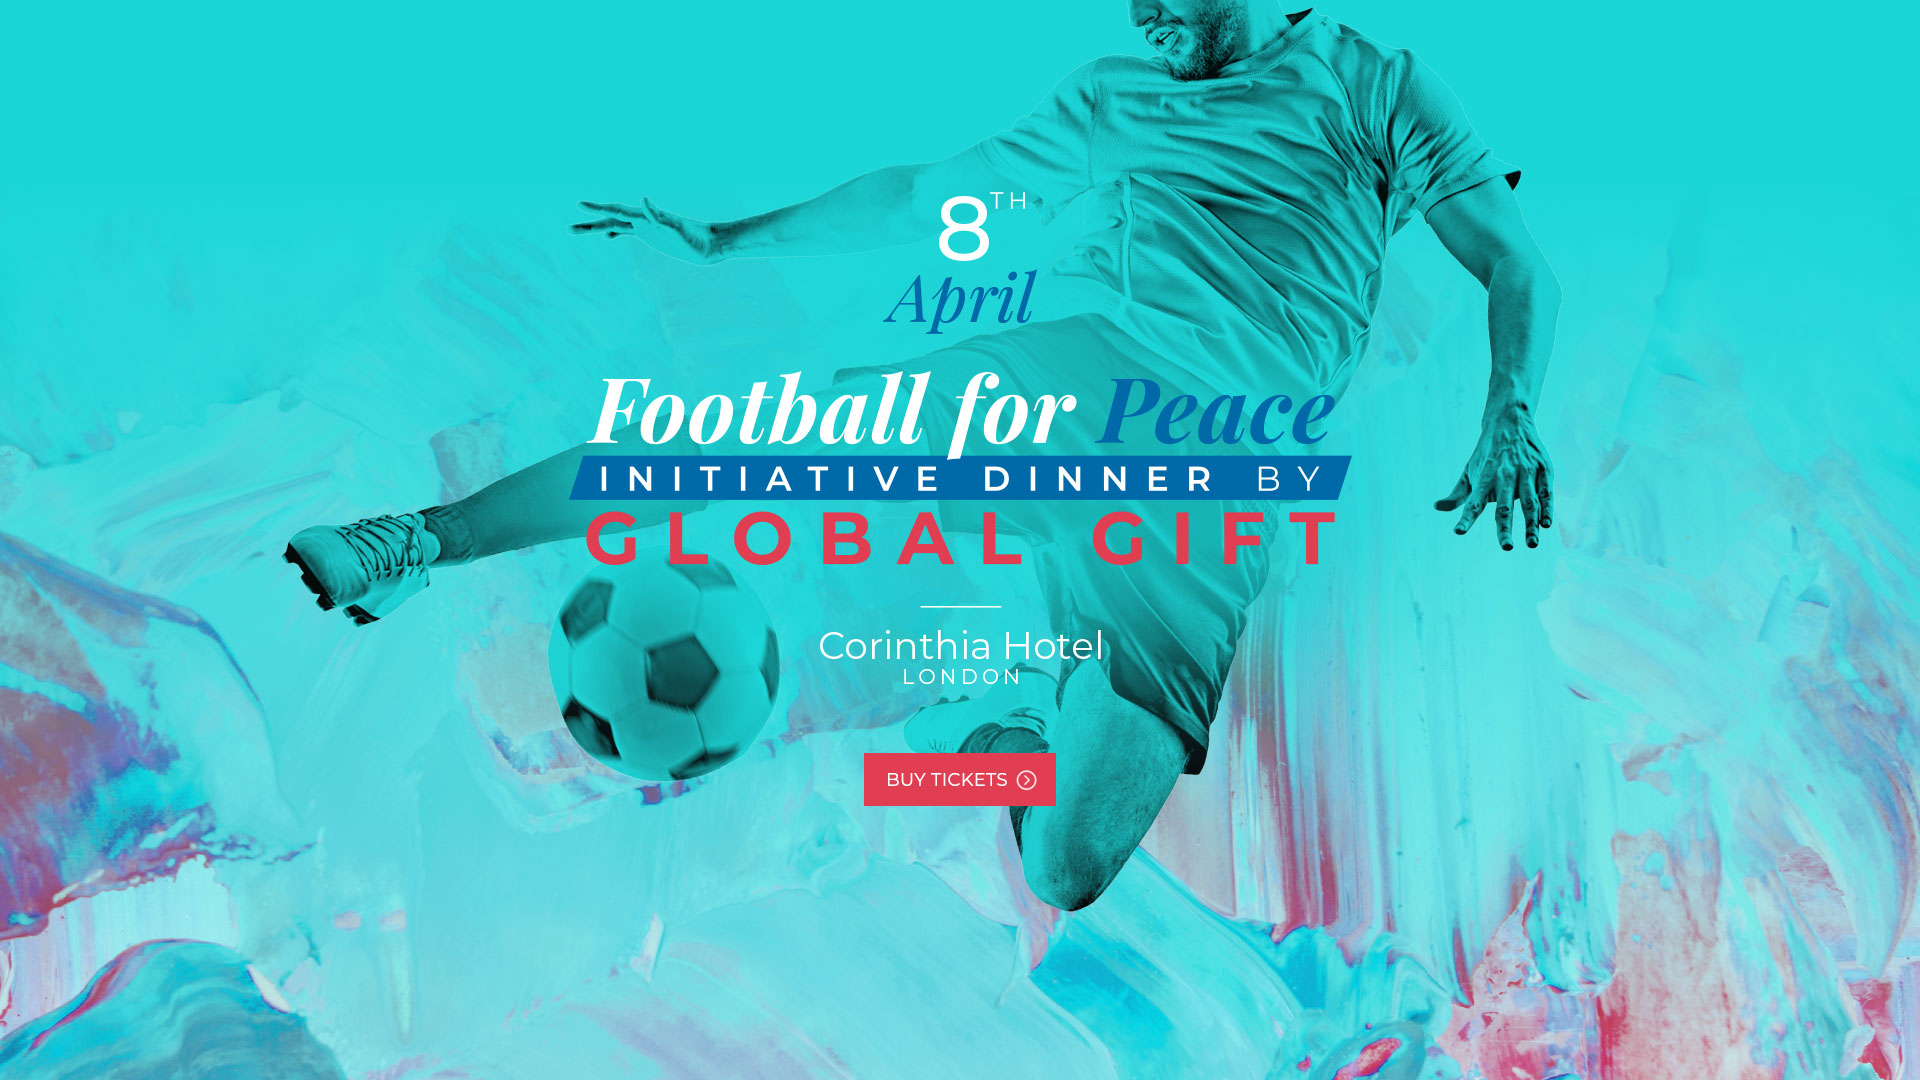 Footbal for Peace initiative dinner by Global Gift